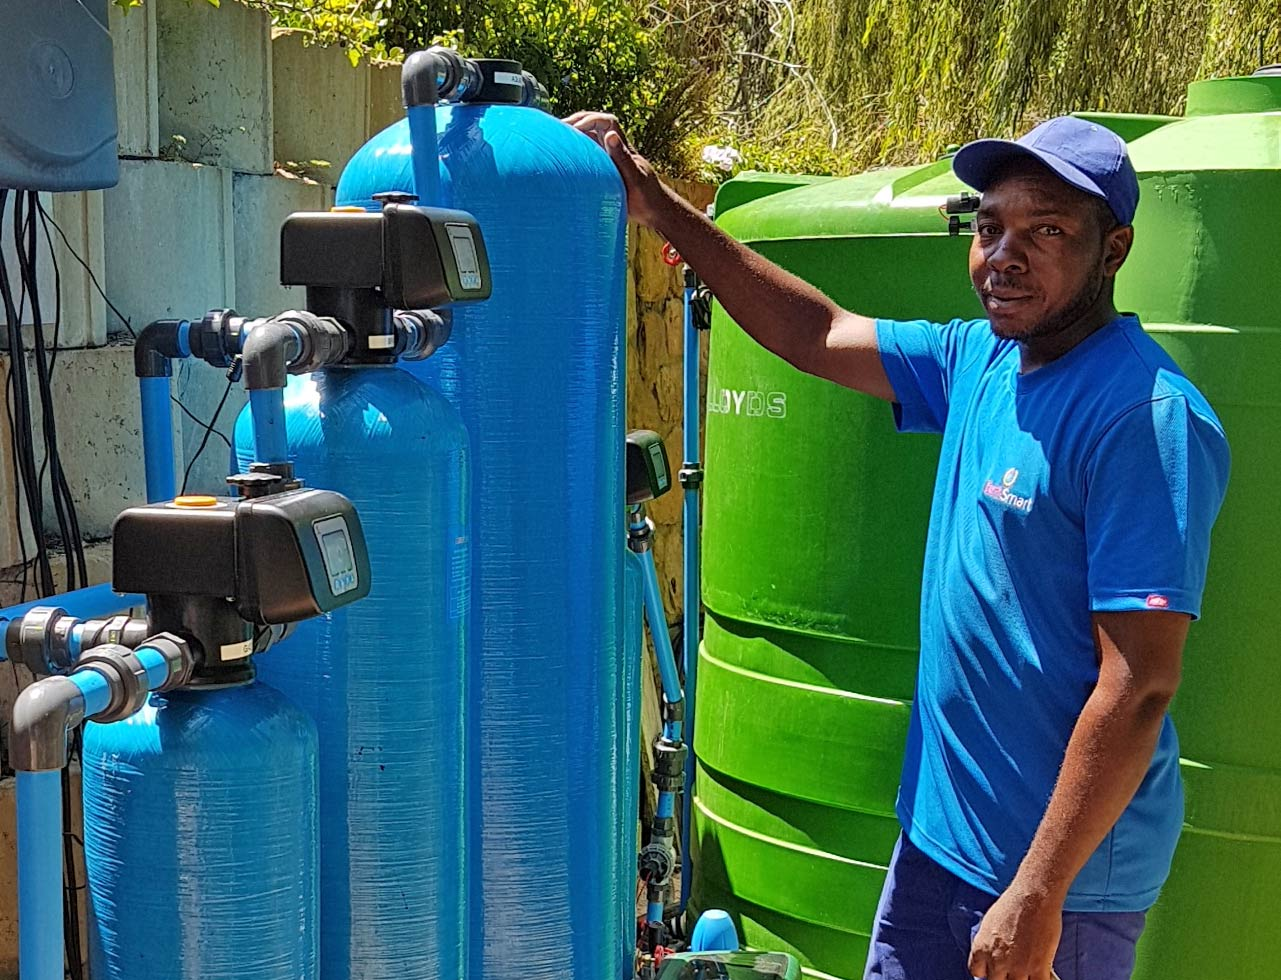 Water treated for high iron content